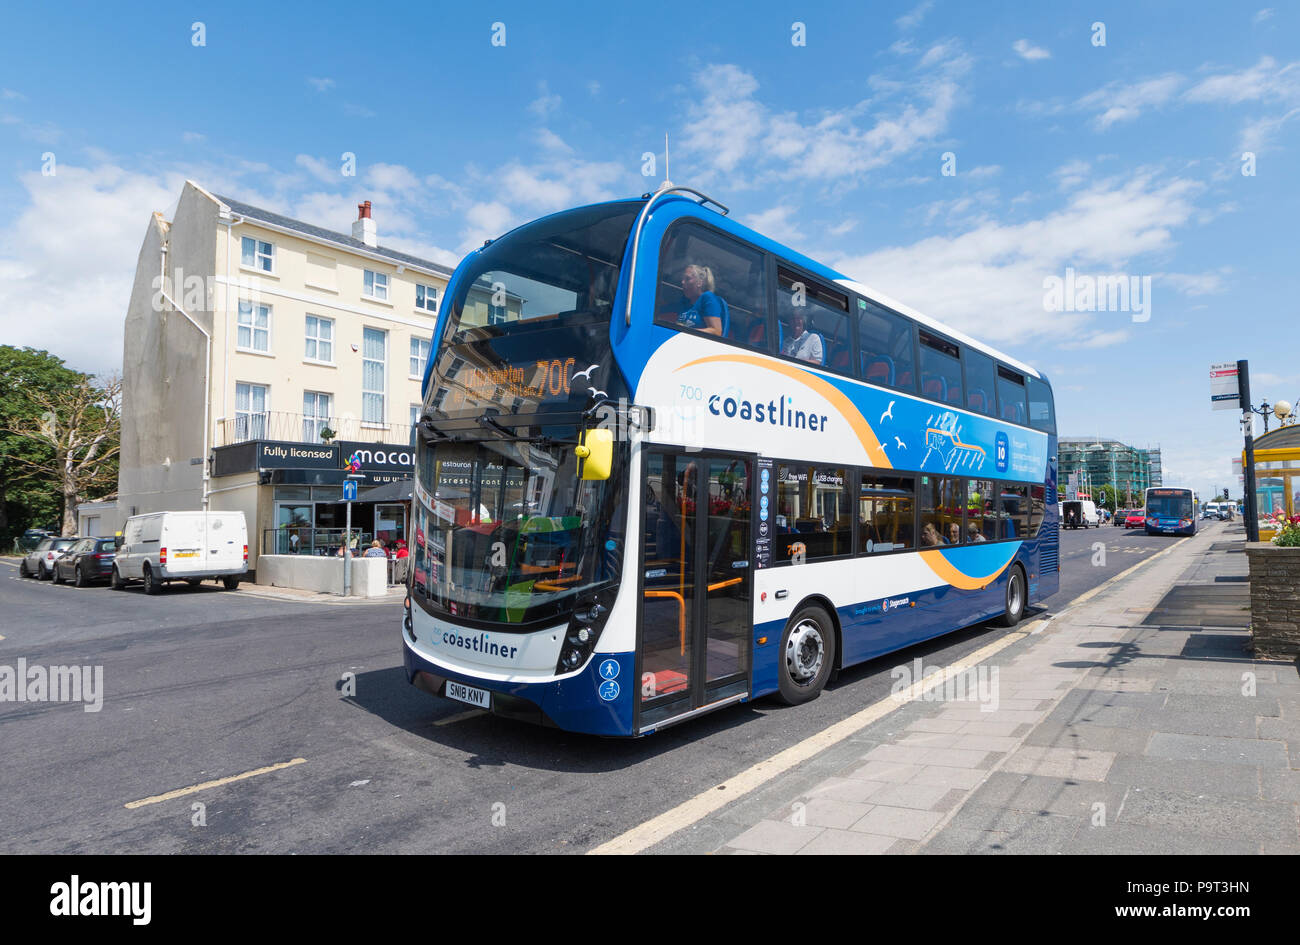 New Stagecoach Environmentally Friendly Number 700 Coastliner Bus In Worthing West Sussex England UK